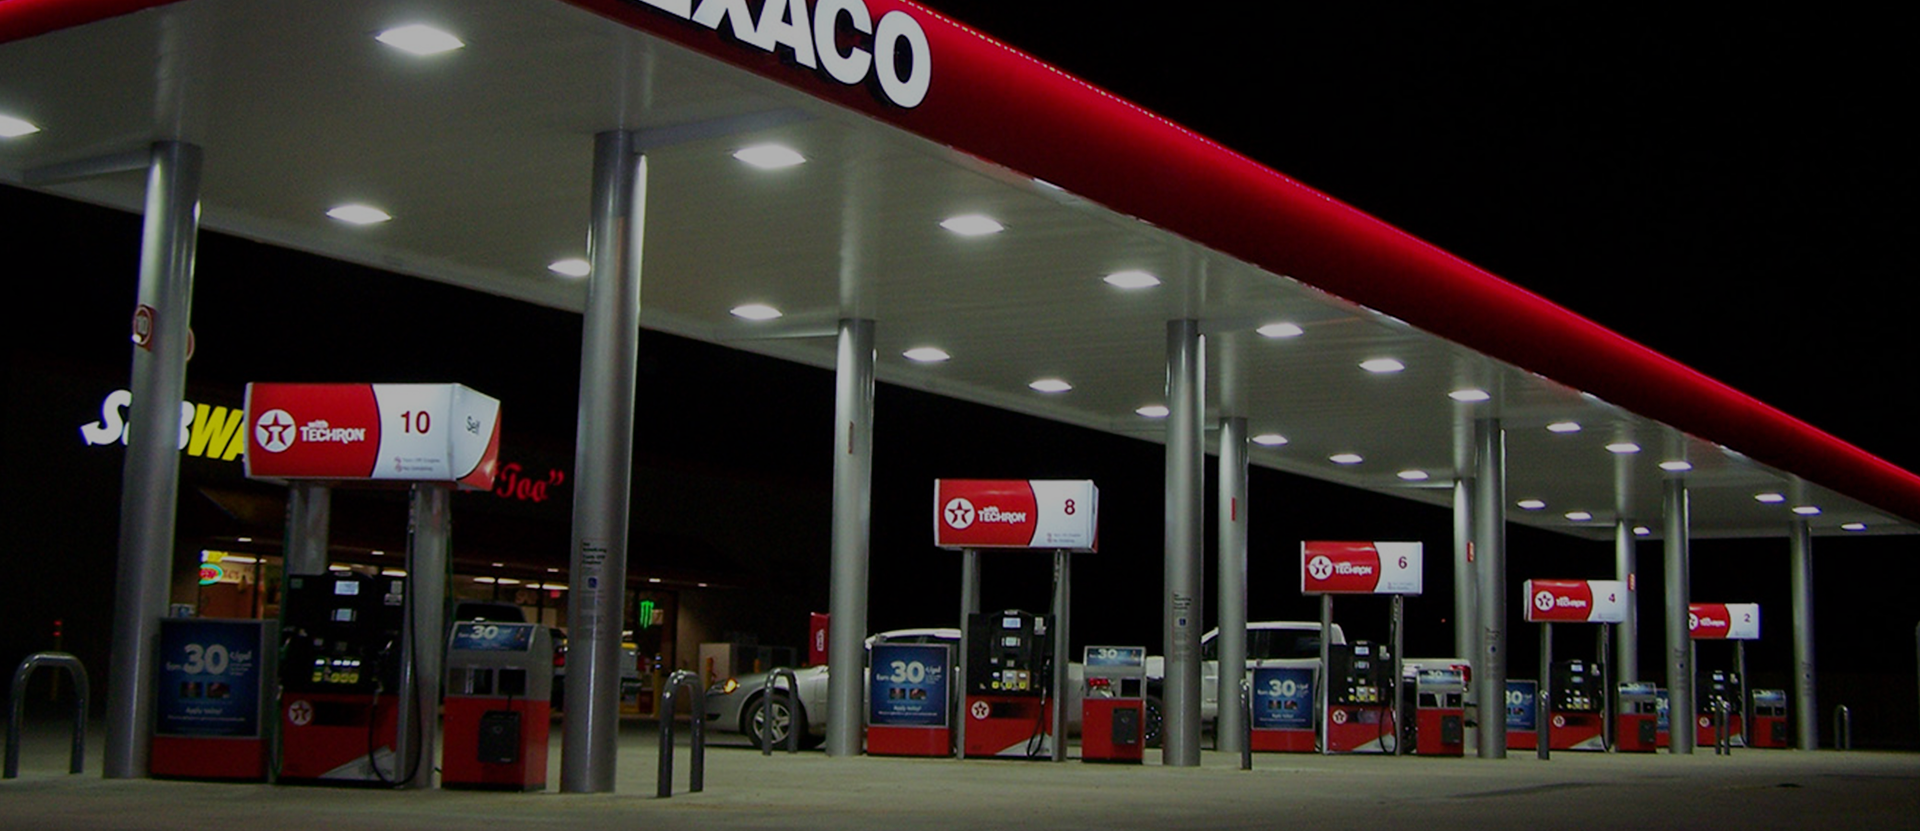 Texaco-forecourt-with-Gilbarco-dispensers